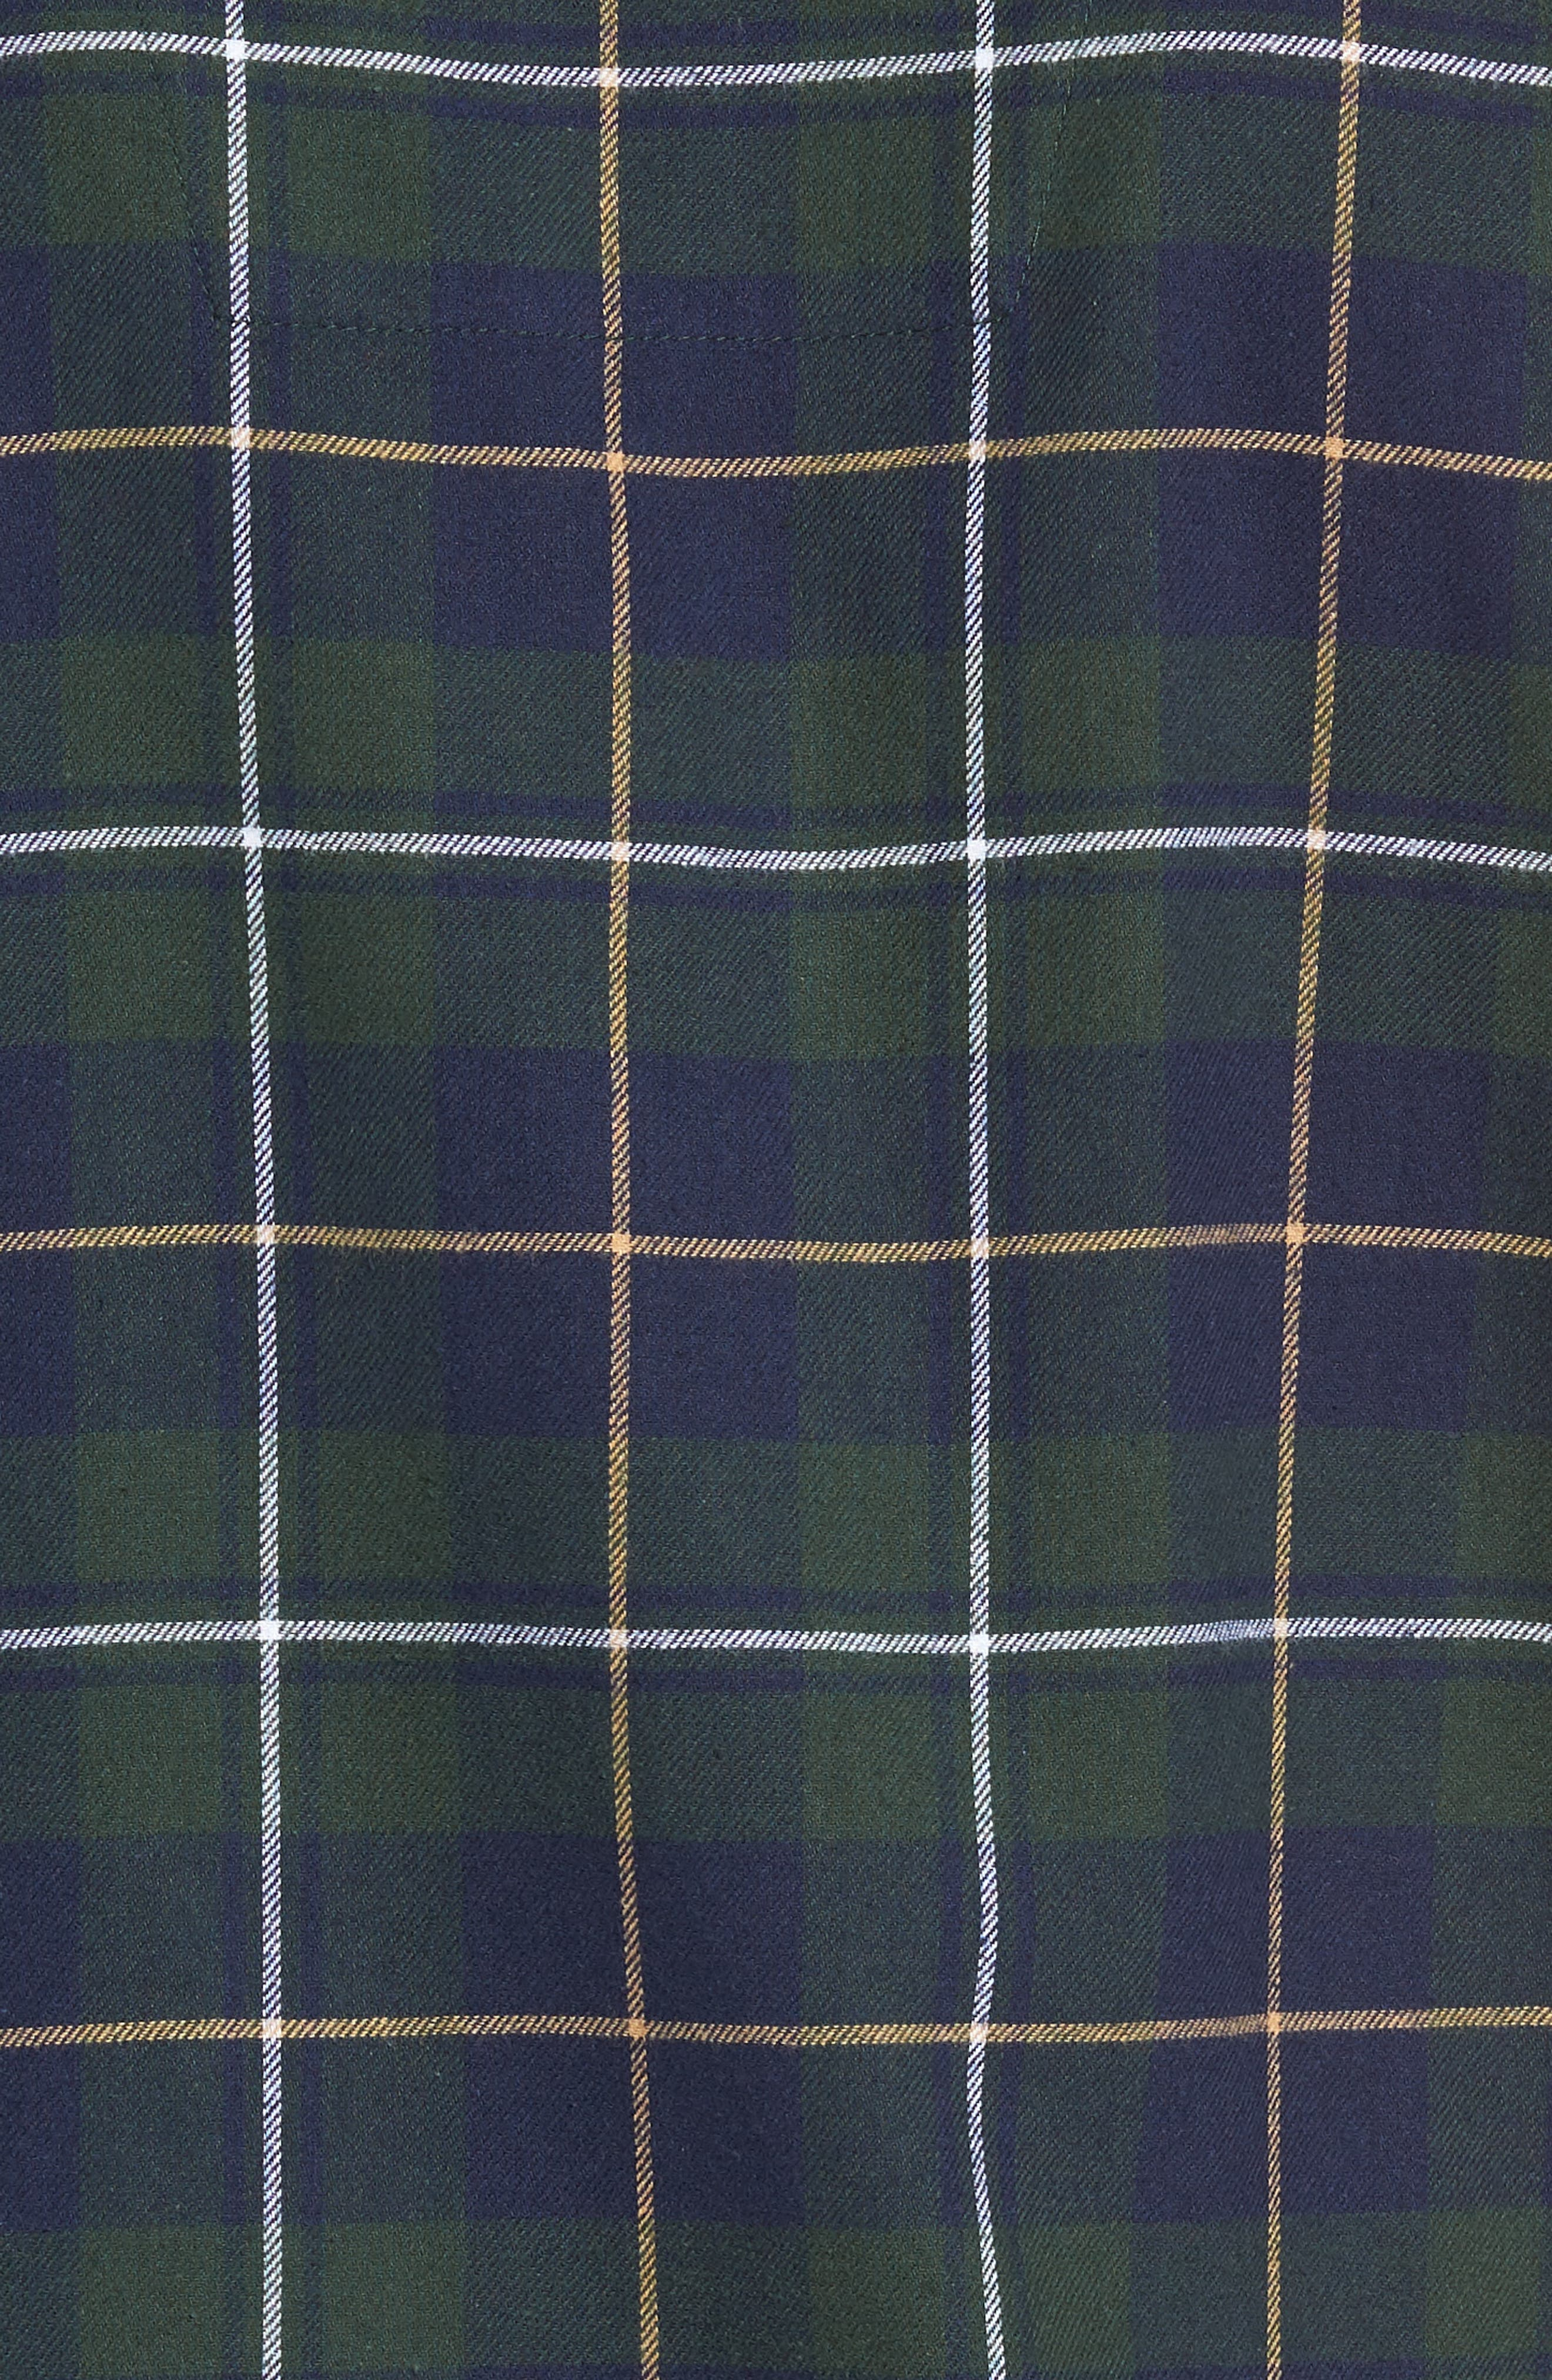 '824' Flannel Pajama Set,                             Alternate thumbnail 5, color,                             GREEN CHARCOAL FADED PLAID